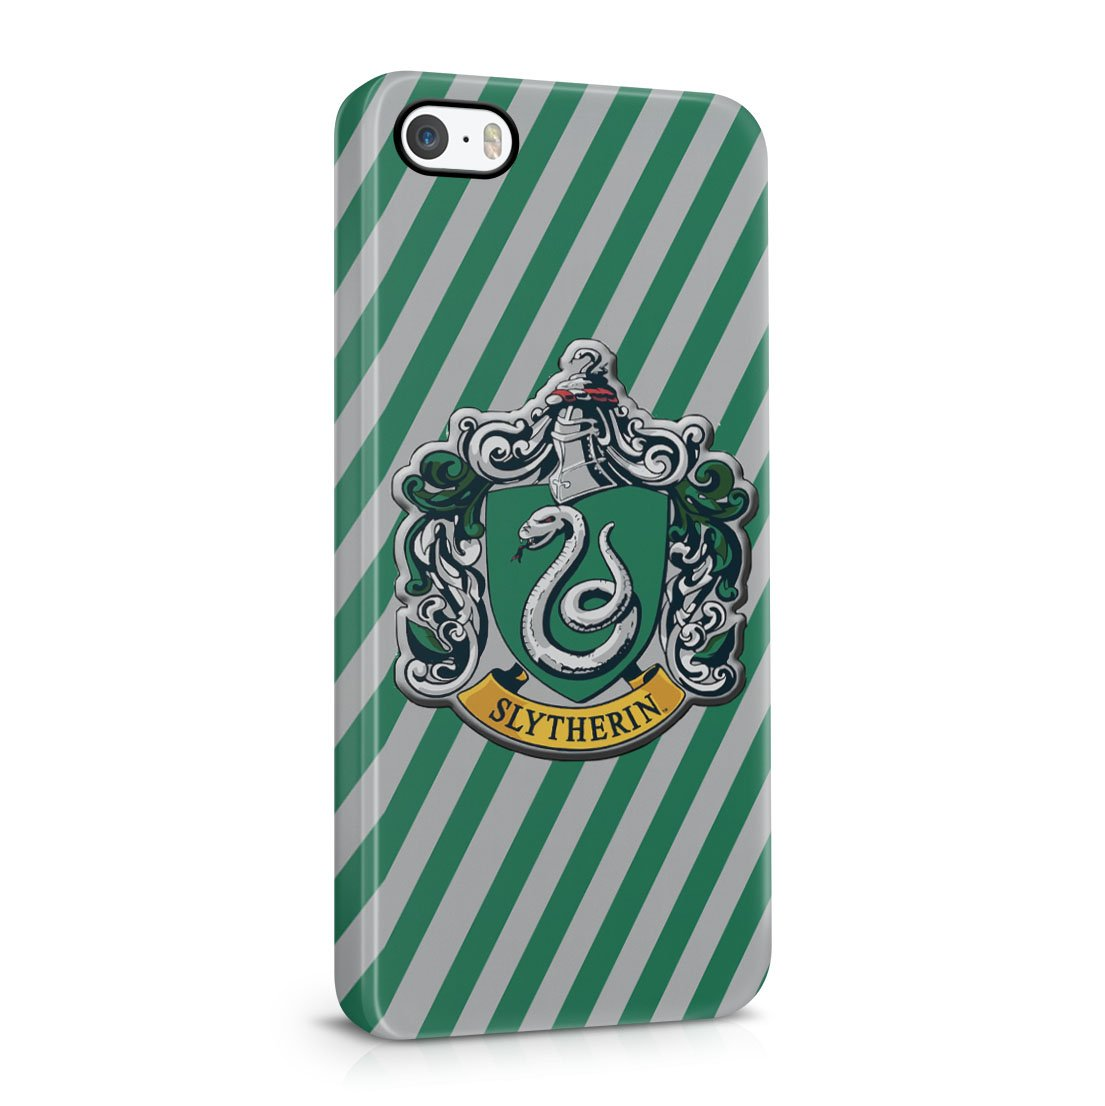 Harry Potter Slytherin Badge Logo iPhone 5 / 5S Hard Plastic Phone Case Cover